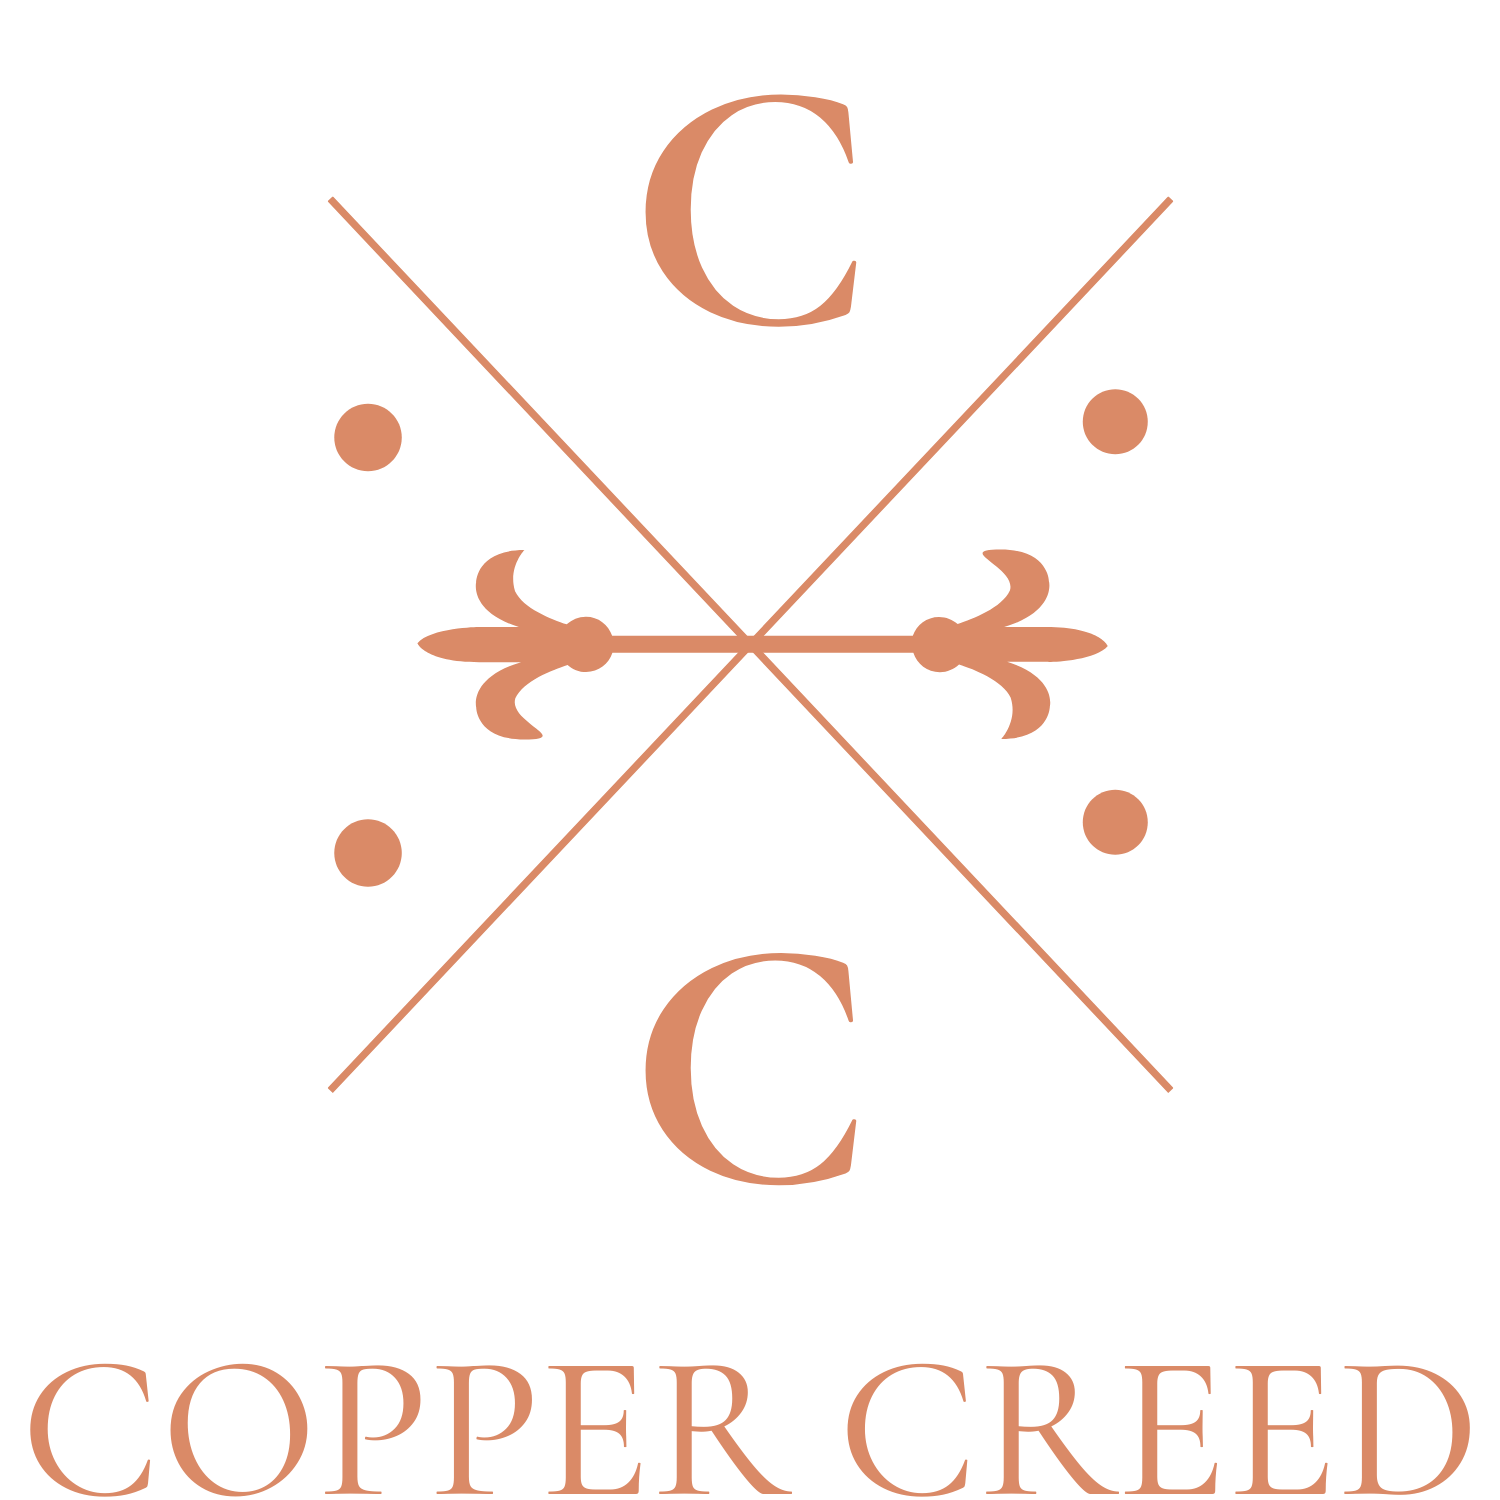 Copper Creed